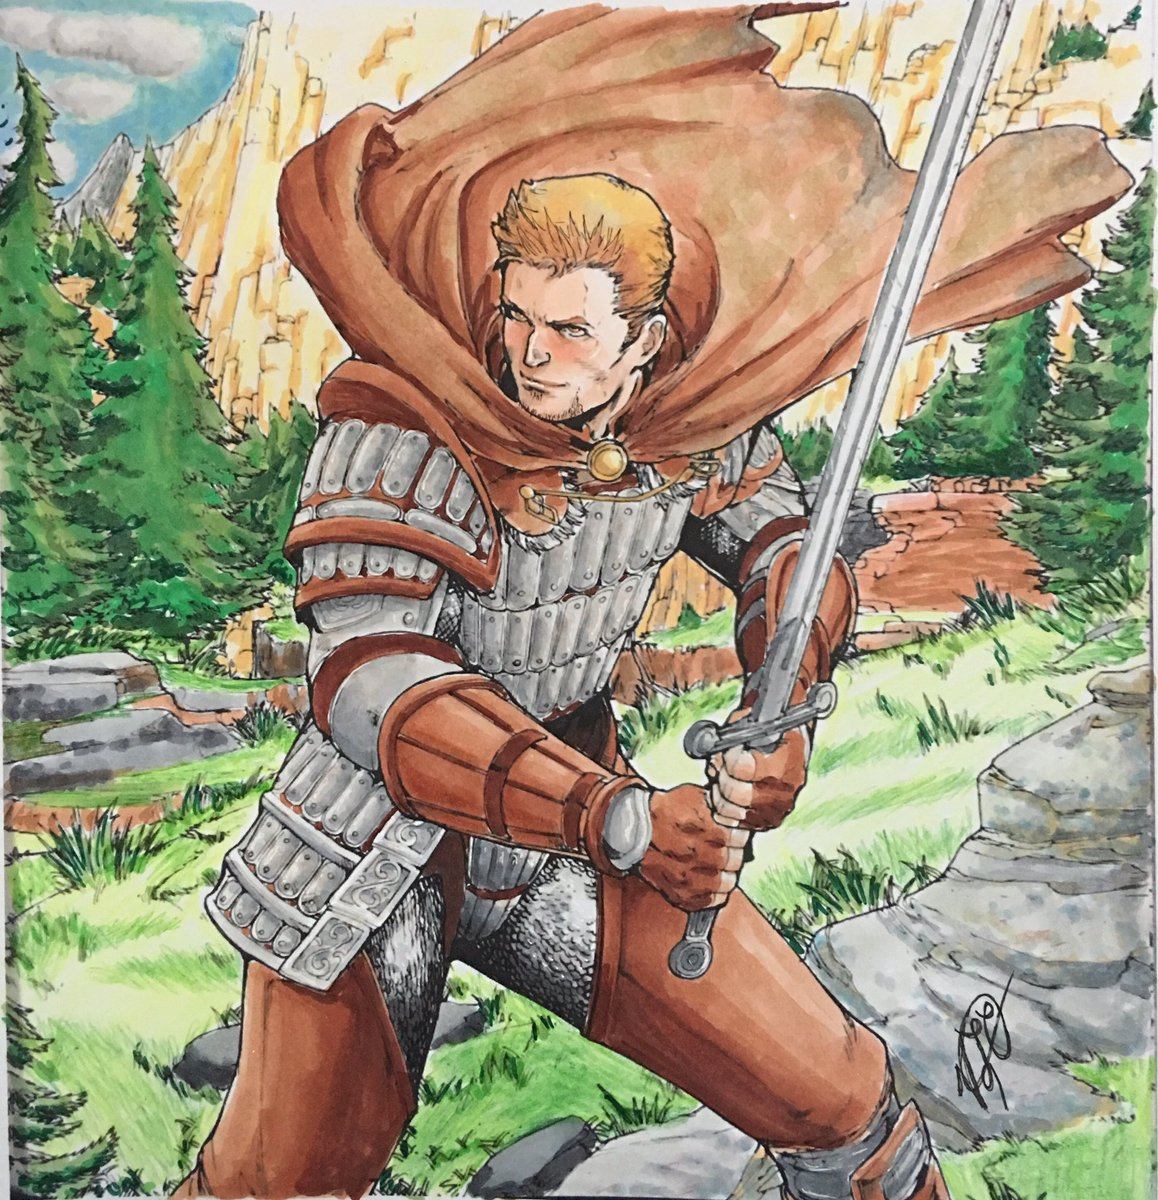 Veronica Coors On Twitter Another From My Dragon Age Coloring Book